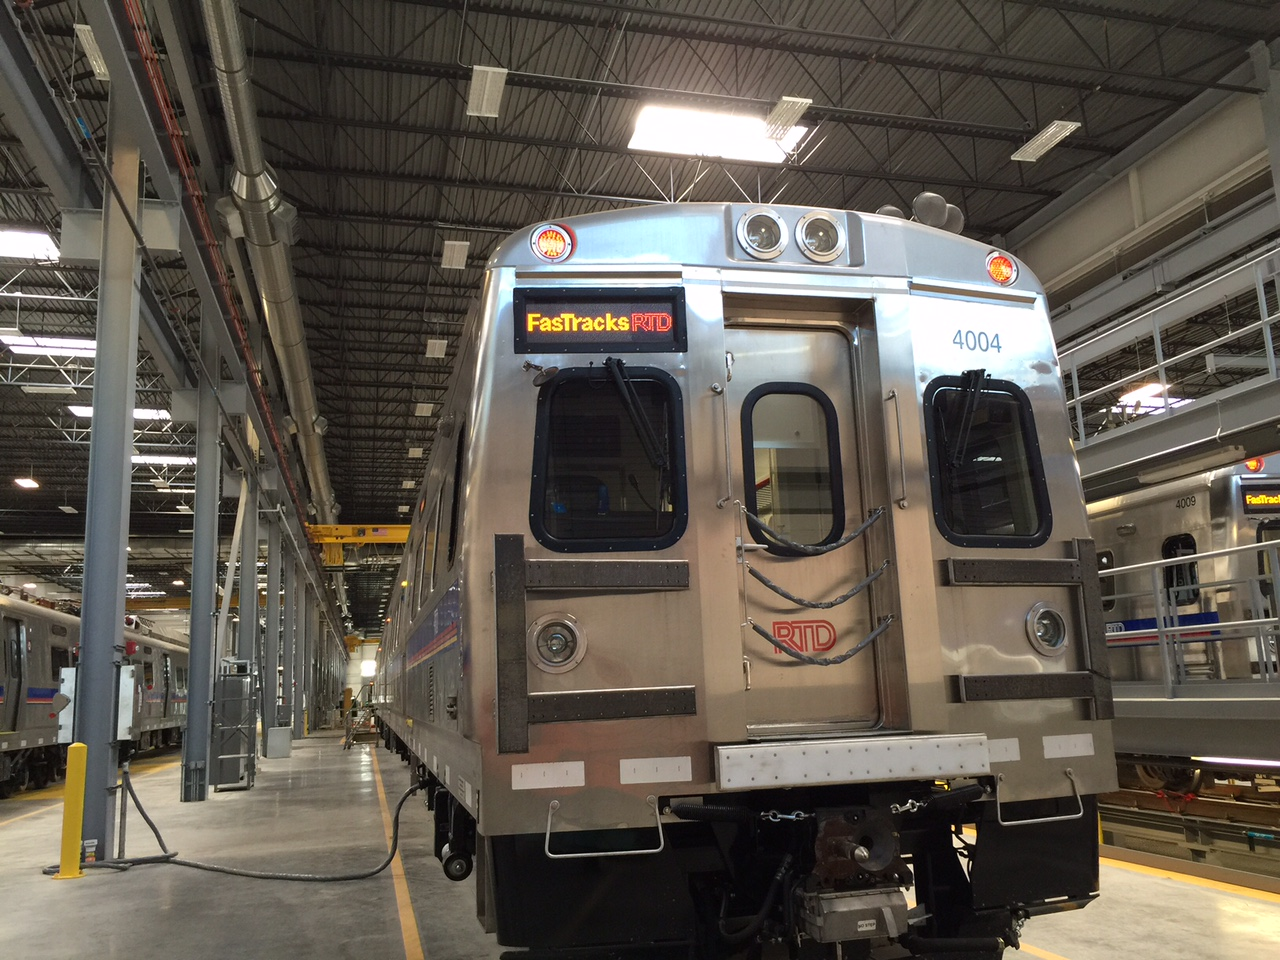 Commuter Rail Car RTD sitting in storage (STAFF)